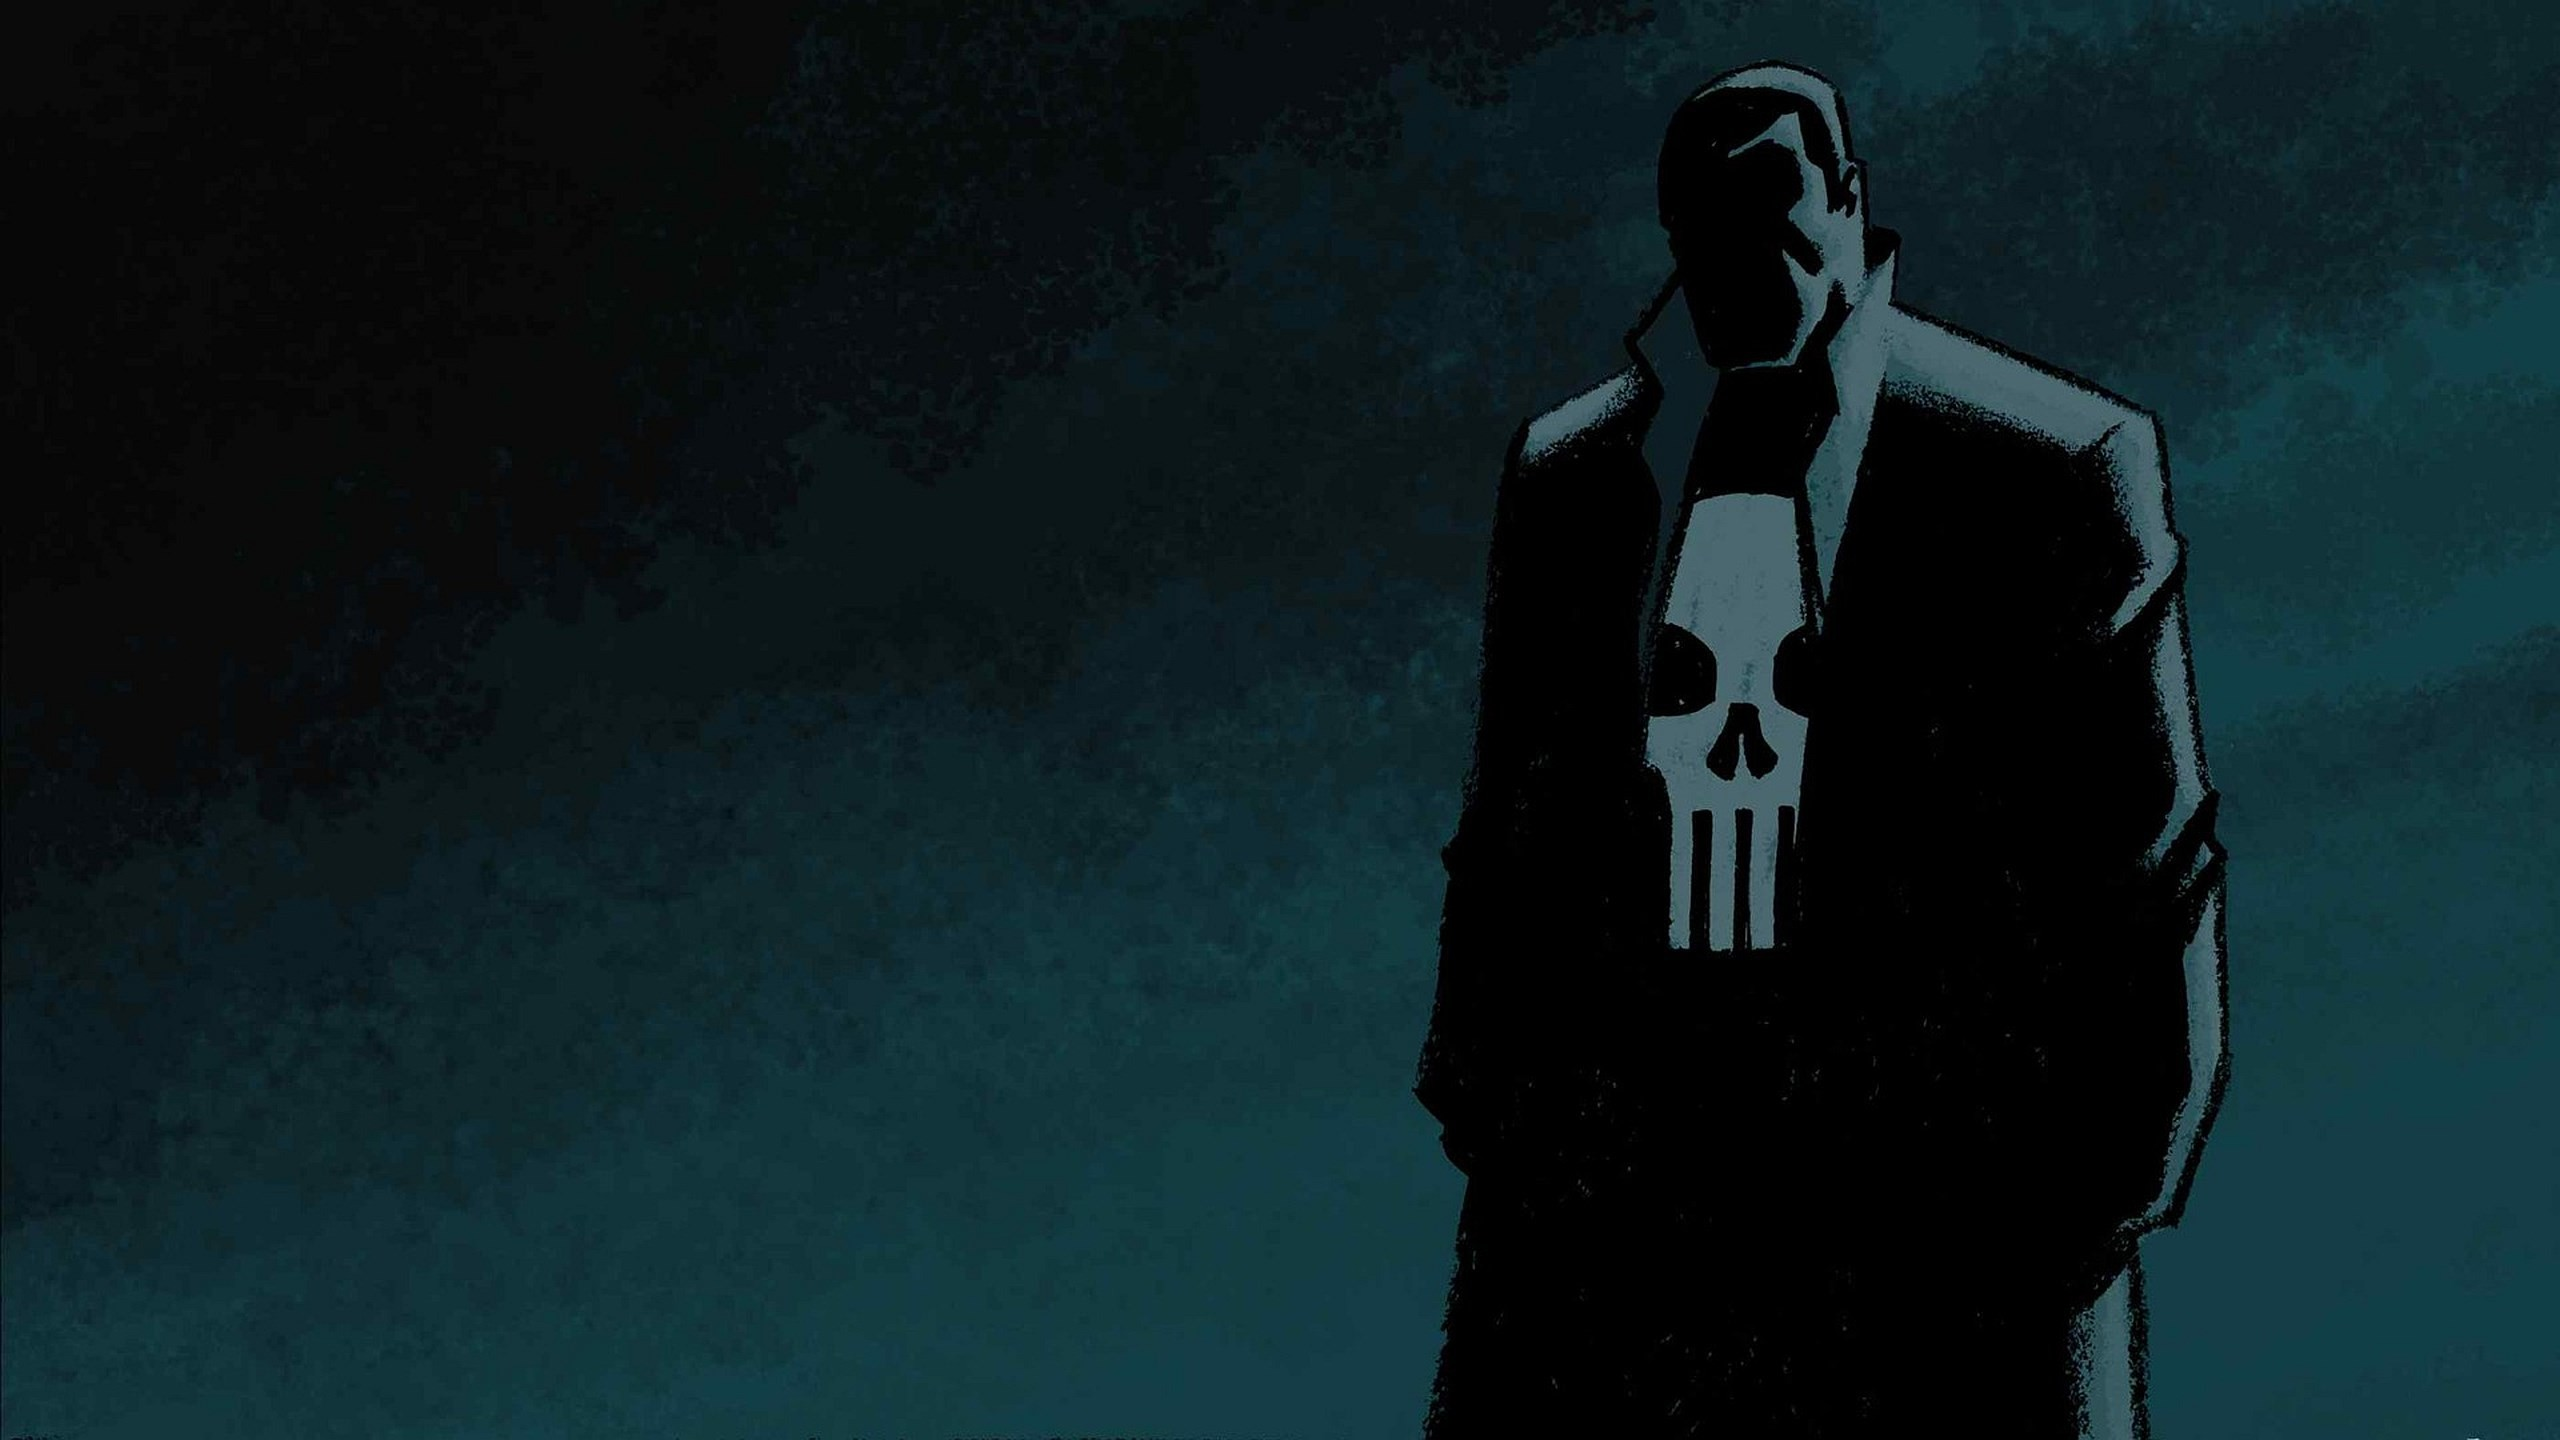 2560x1440 the punisher desktop nexus wallpaper,  (238 kB)